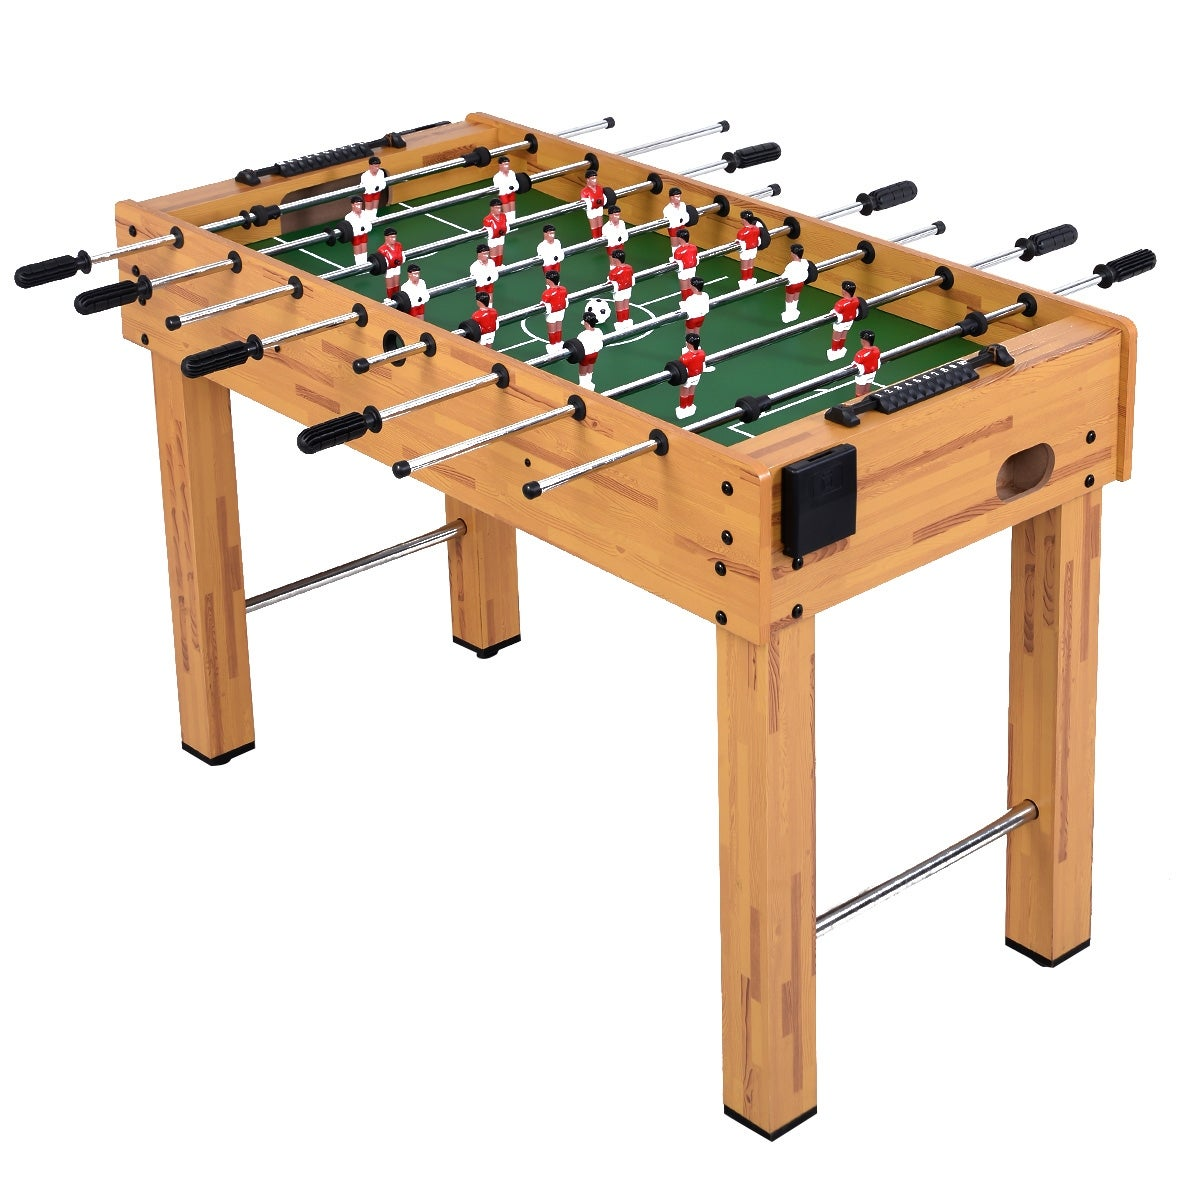 Costway Foosball Soccer Table 48 Competition Sized Arcade Game Room Hockey Family Sport Overstock 18878622